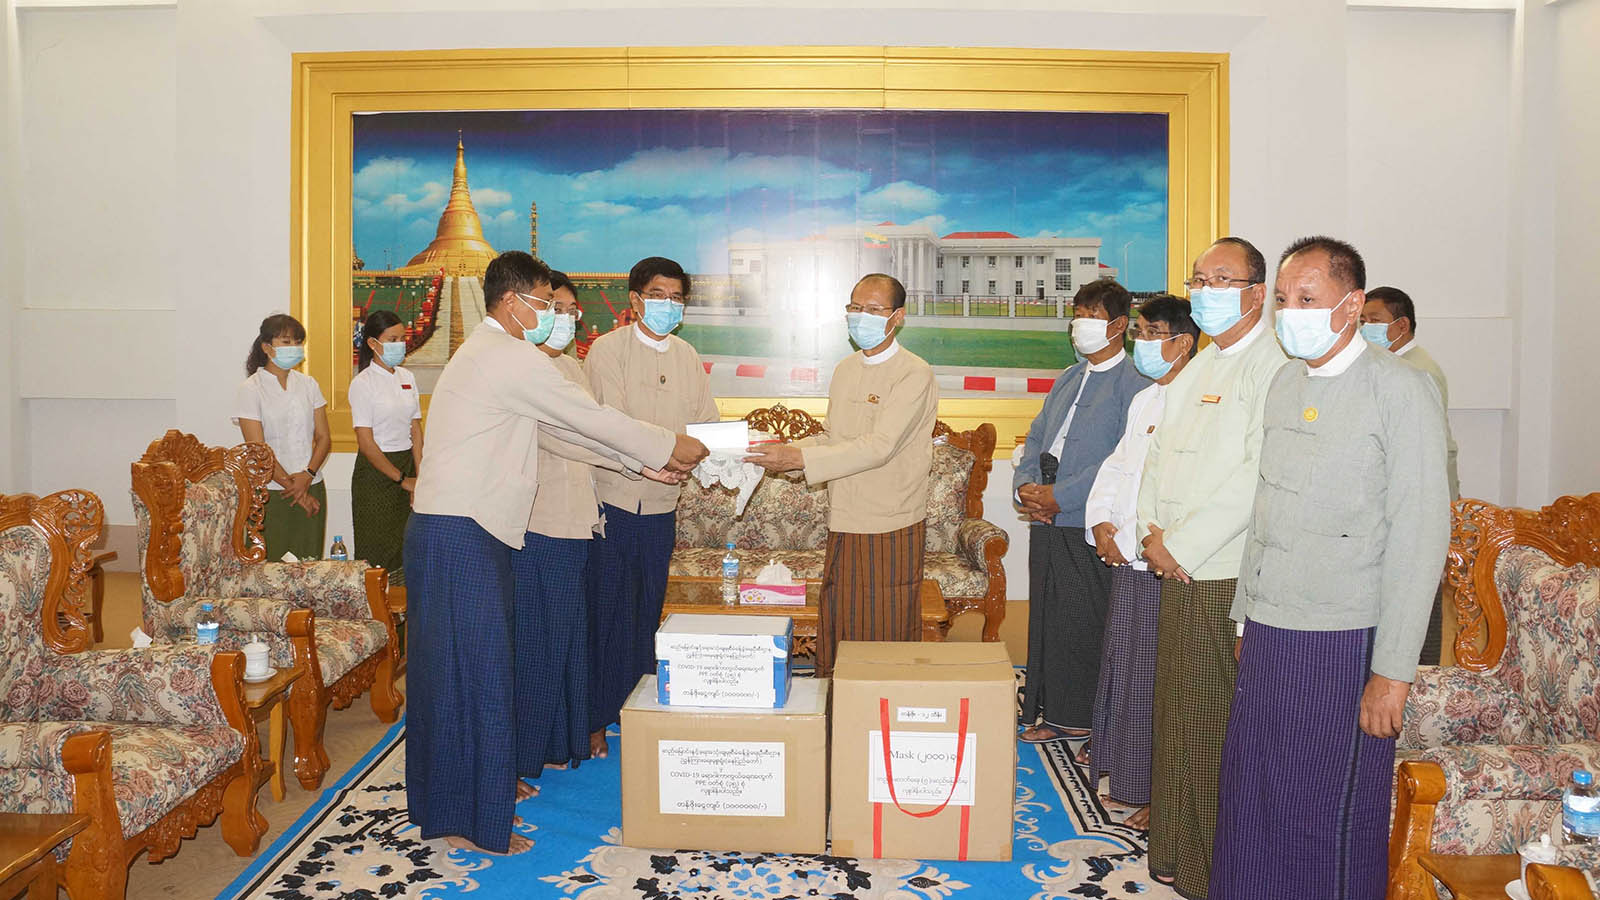 Dr Myo Aung receives donations of personal protective equipment and surgical masks to the Department of Public Health for efficient uses in Nay Pyi Taw.Photo: MNA